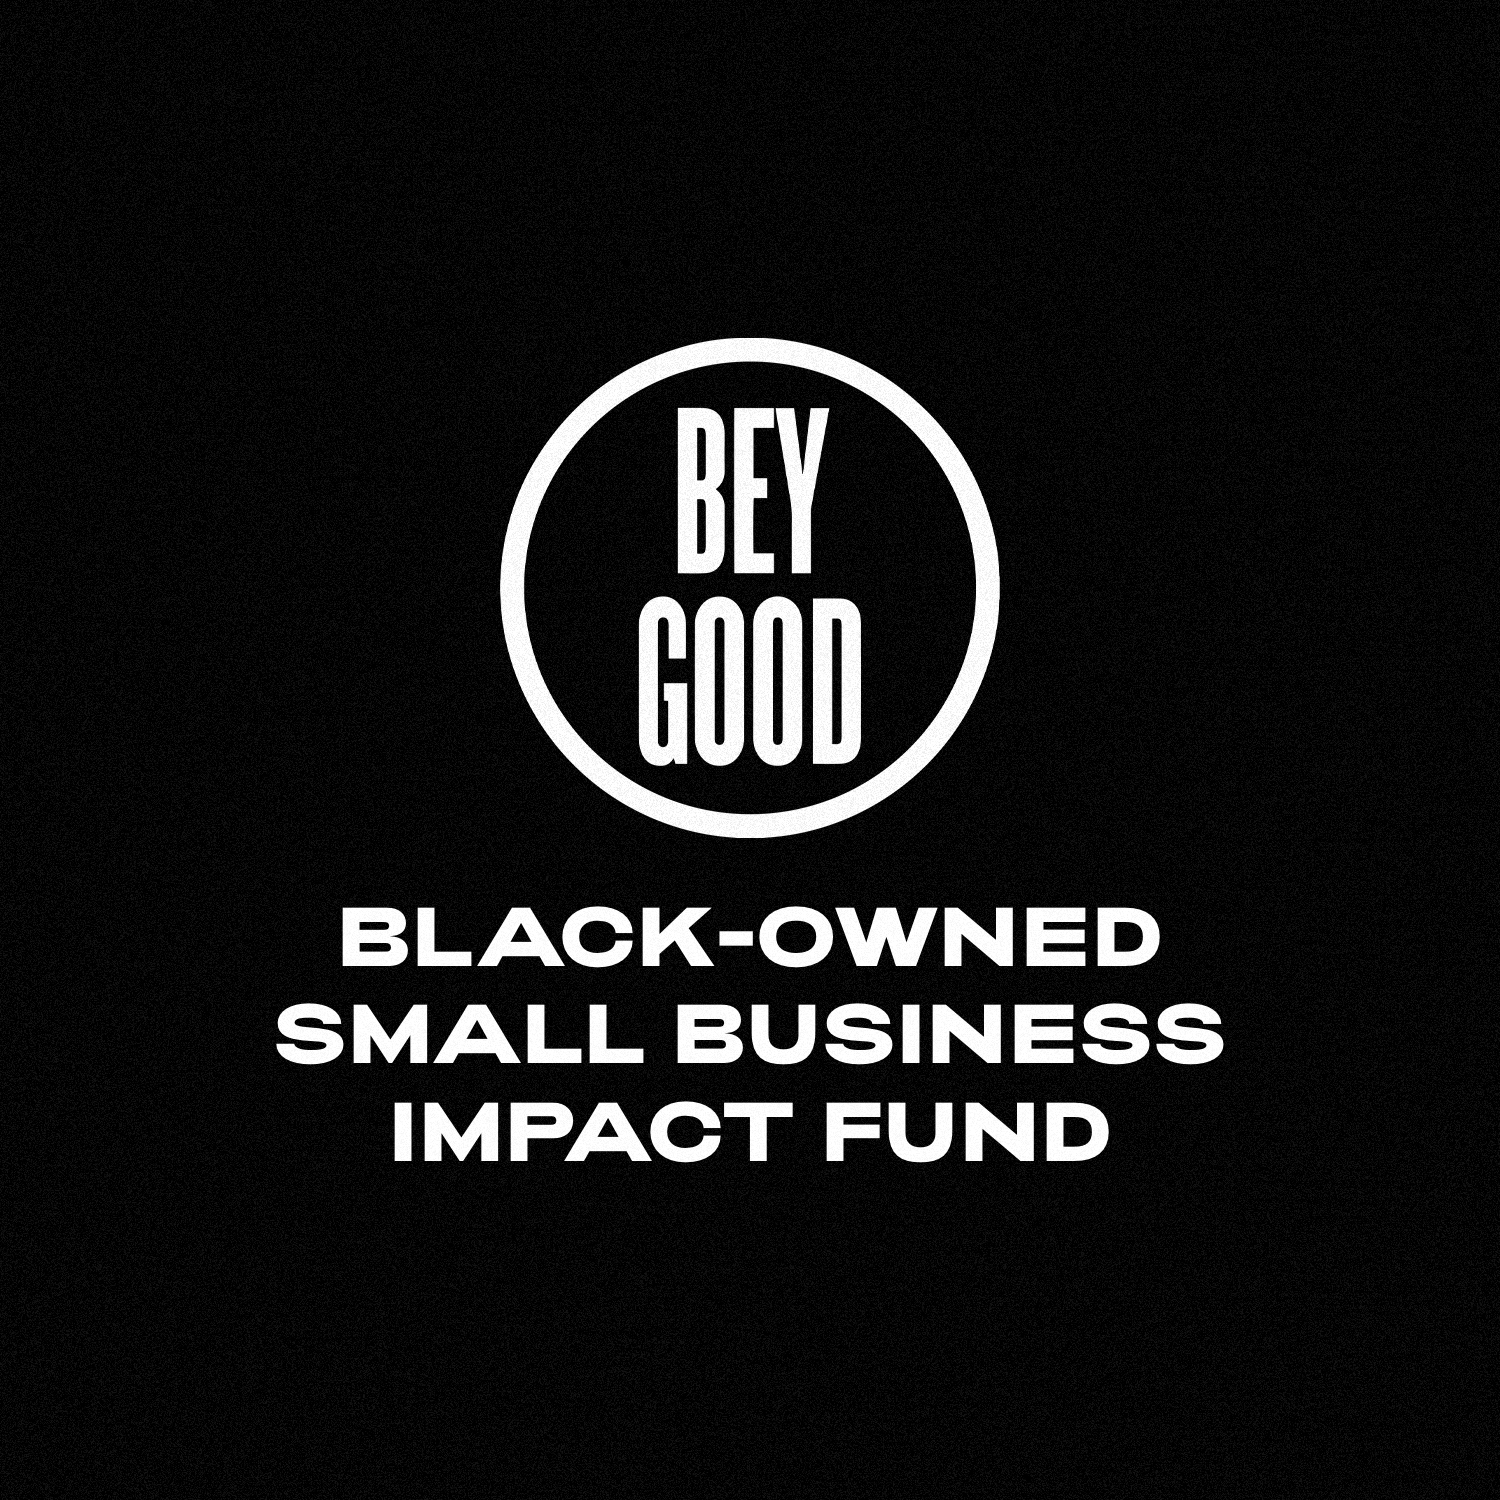 NAACP x BeyGOOD: Black Owned Small Business Impact Fund